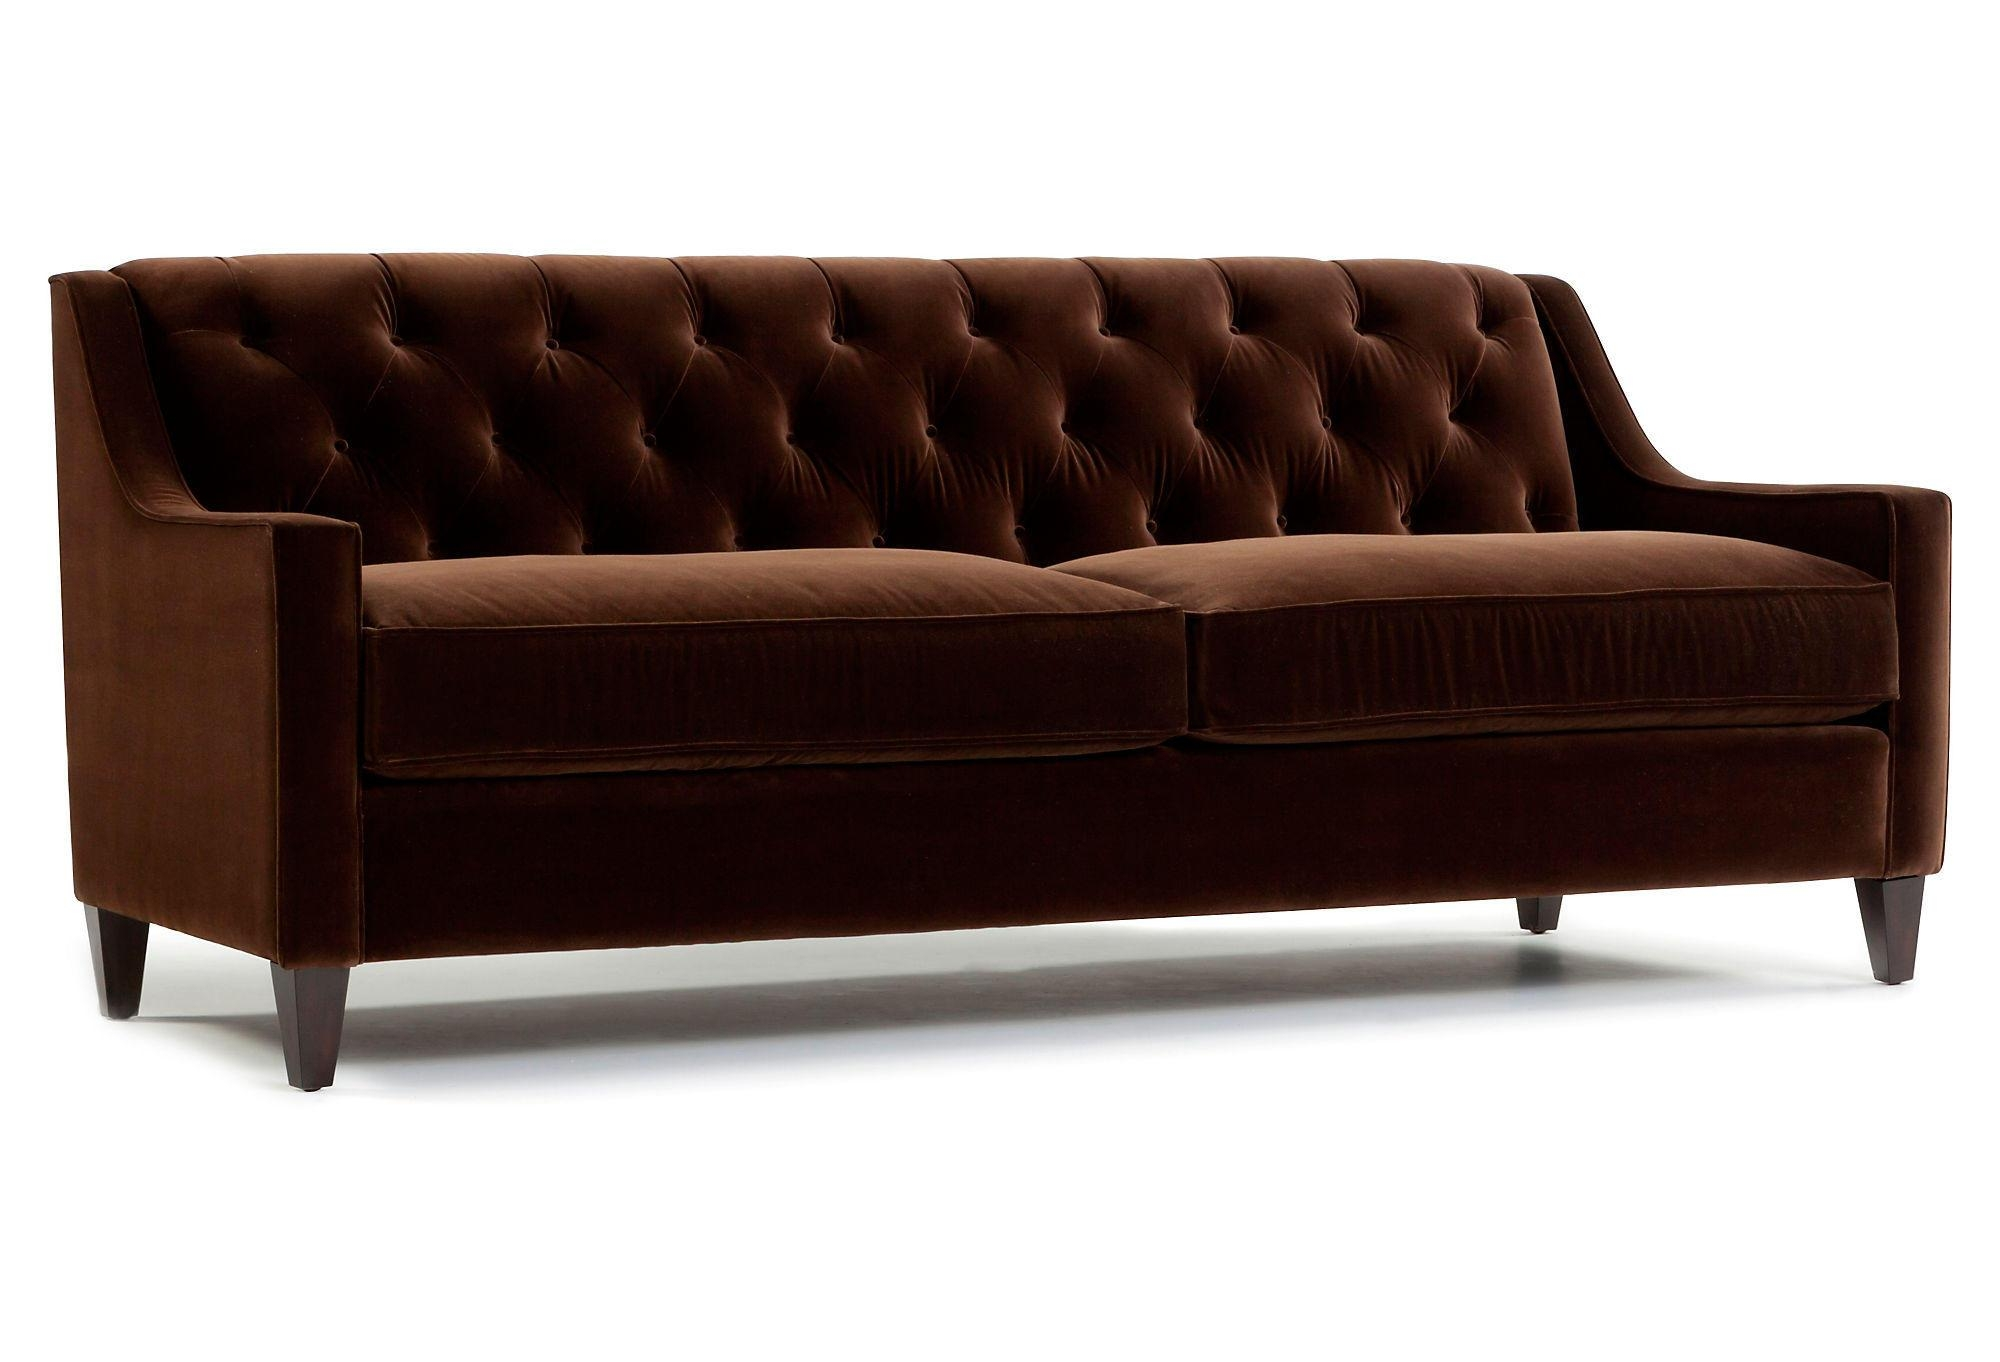 Velvet Tufted Sofa (Image 20 of 20)